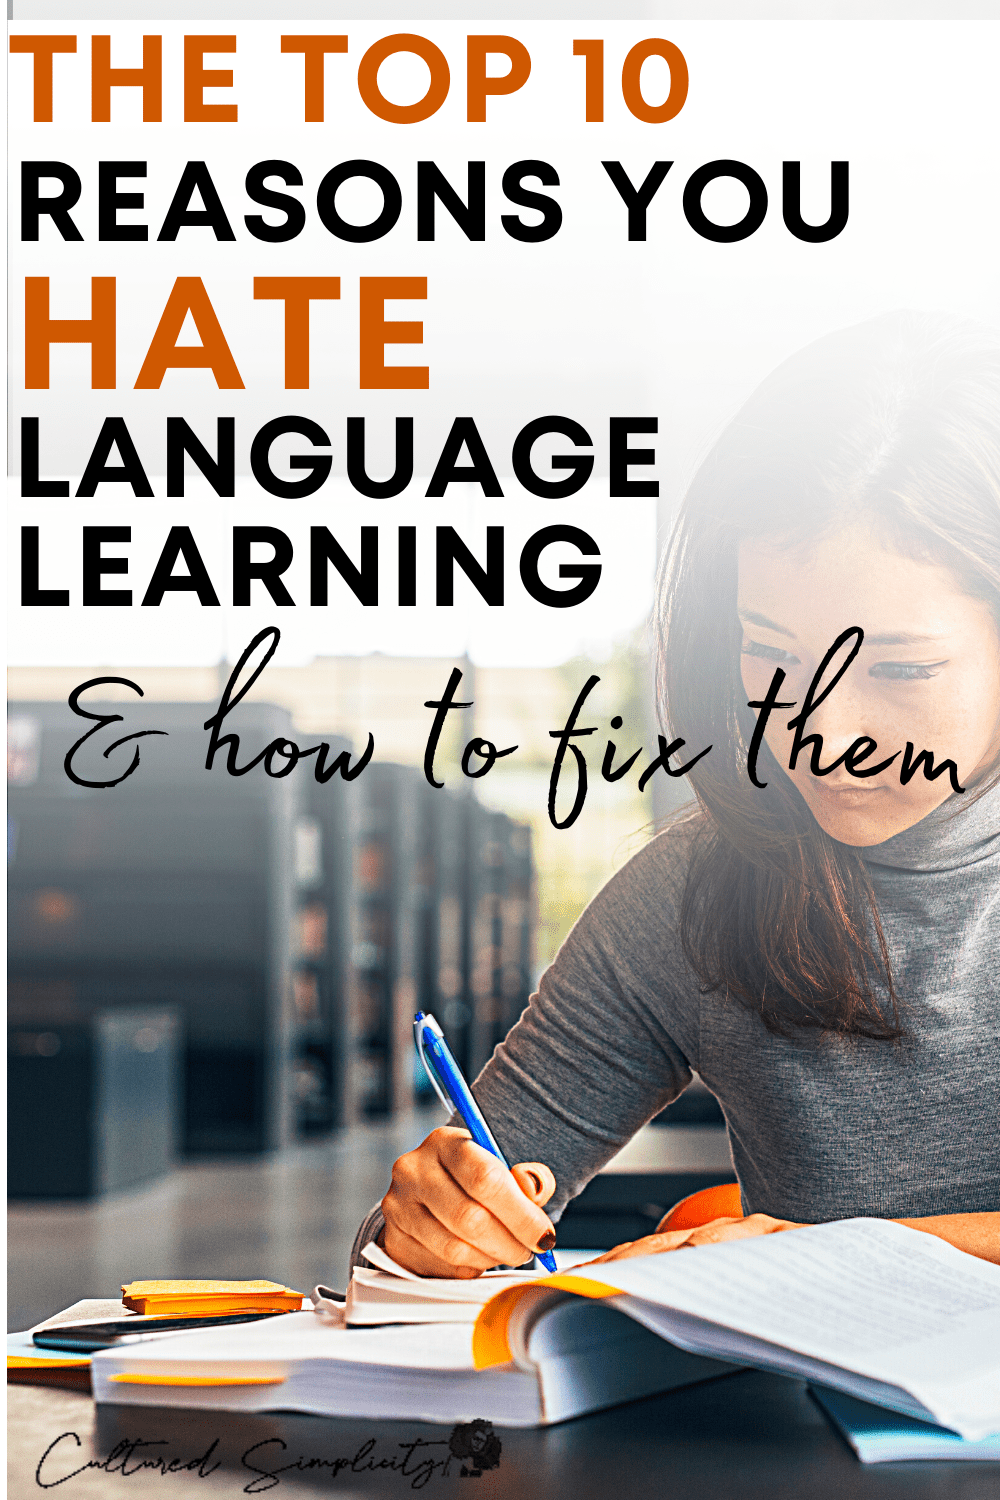 The Top 10 Reasons you hate language learning & what to do instead